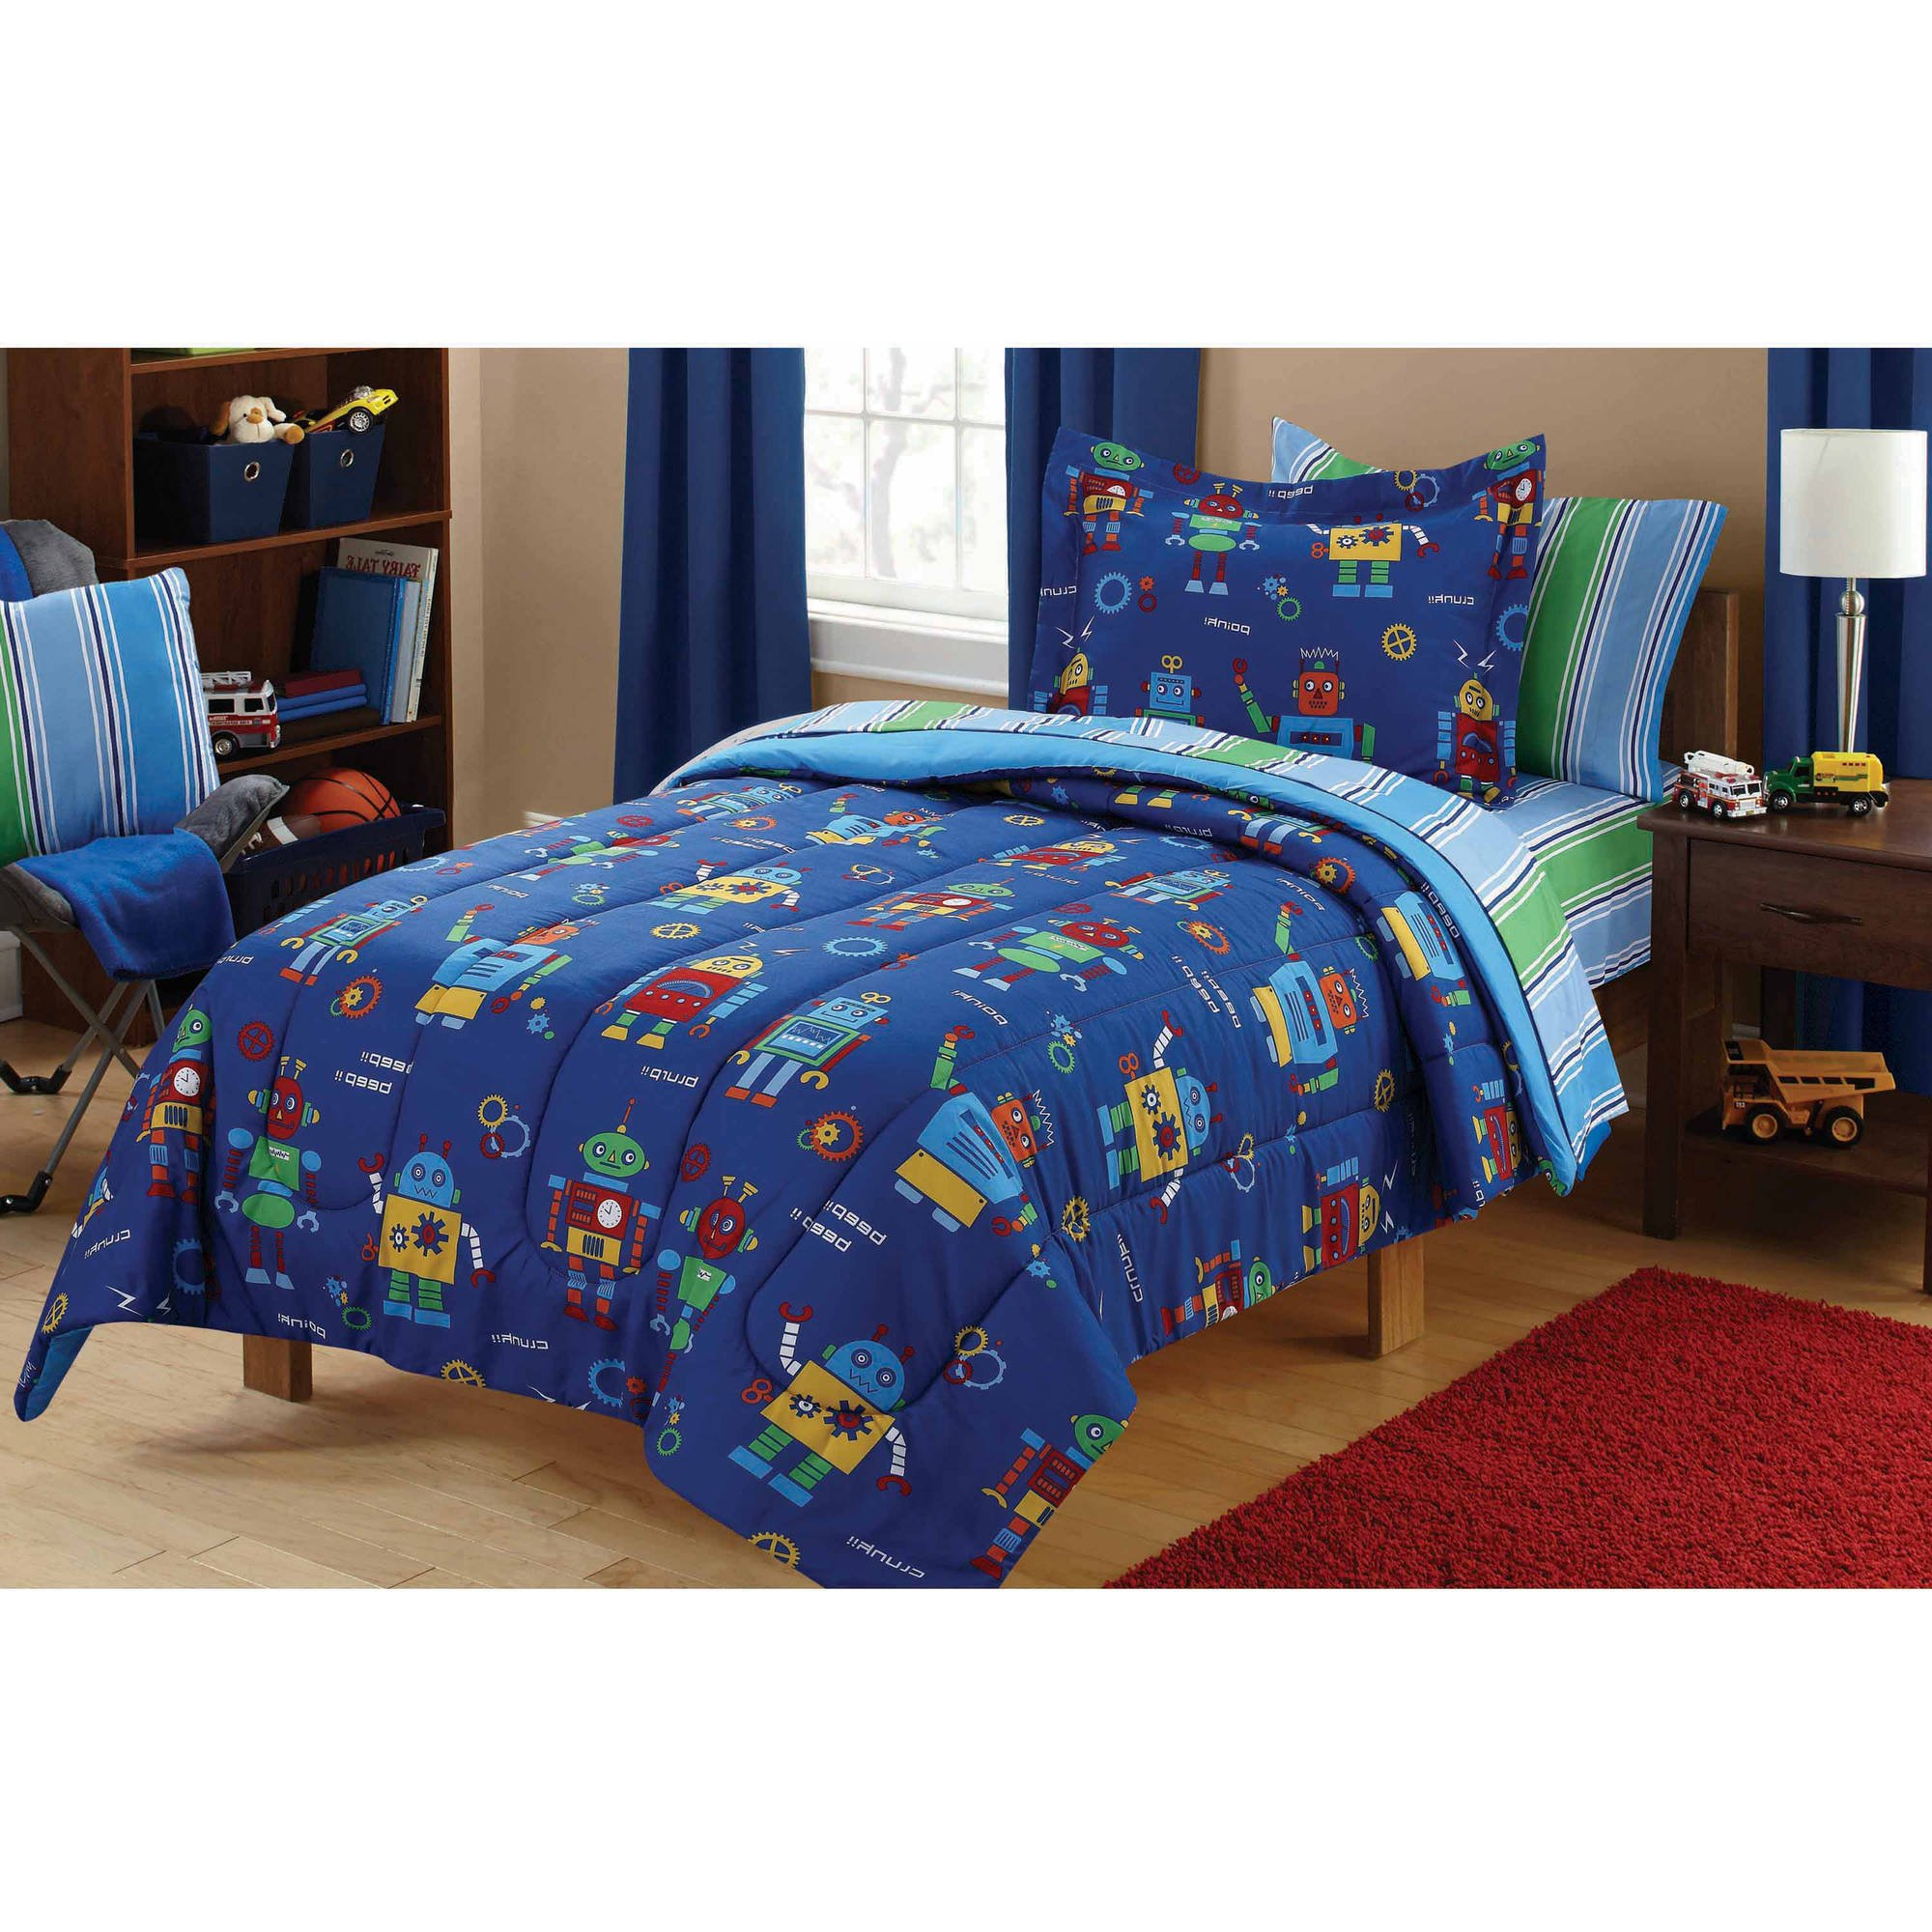 7 Piece Kids Boys Blue Green Robots Comforter Full Set, Red Robot Bedding Science Fiction Themed Bed In Bag Futuristic Machine Mechanic Gear Droid Fantasy Adventure Novelty Graphics Design, Polyester